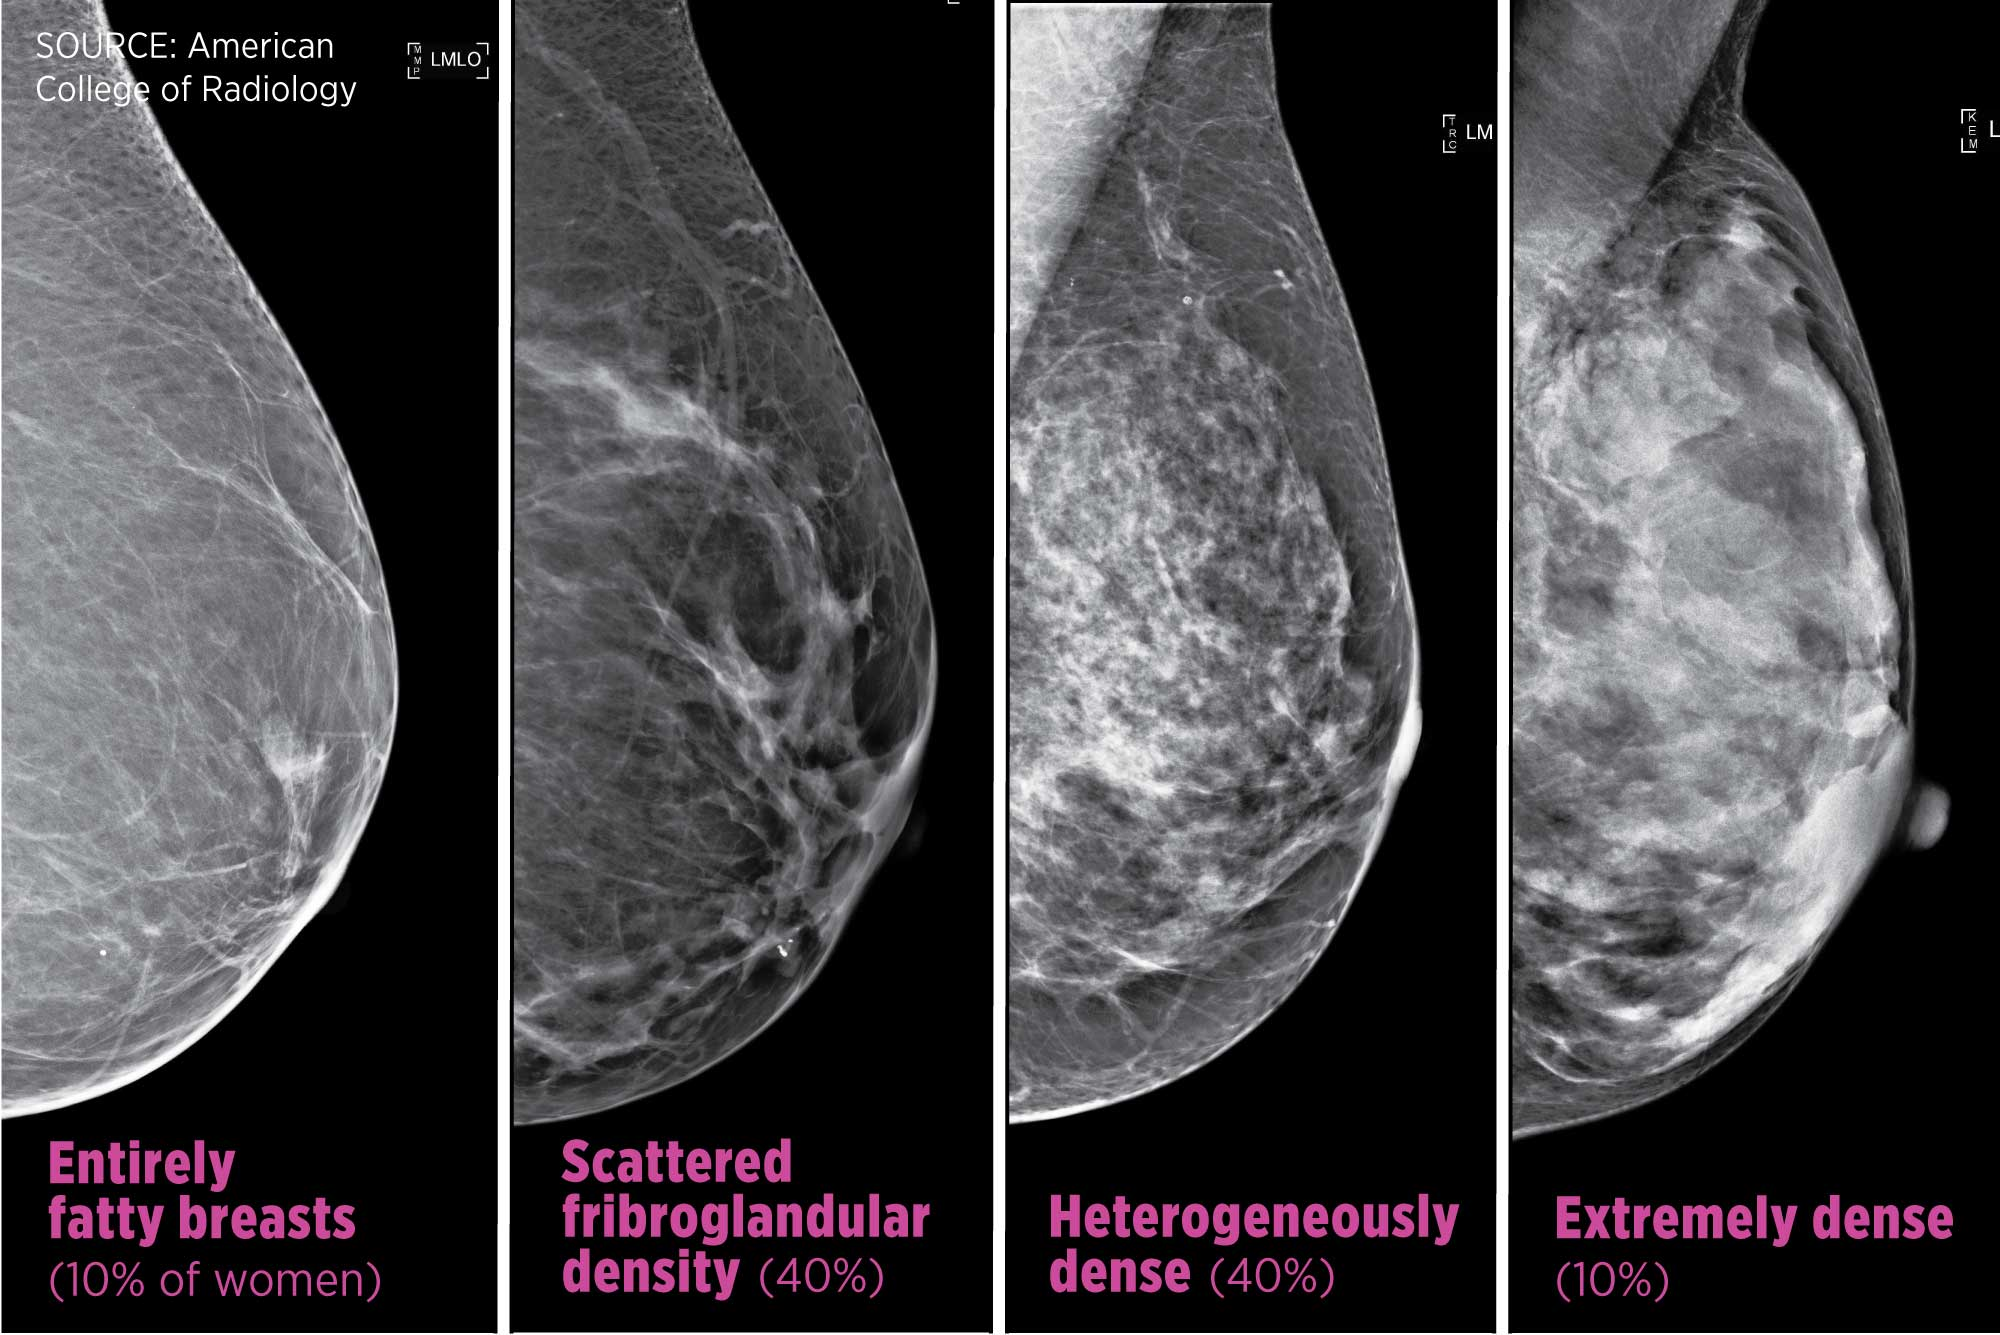 Breast Cancer Density Laws Mean More Tests Unclear